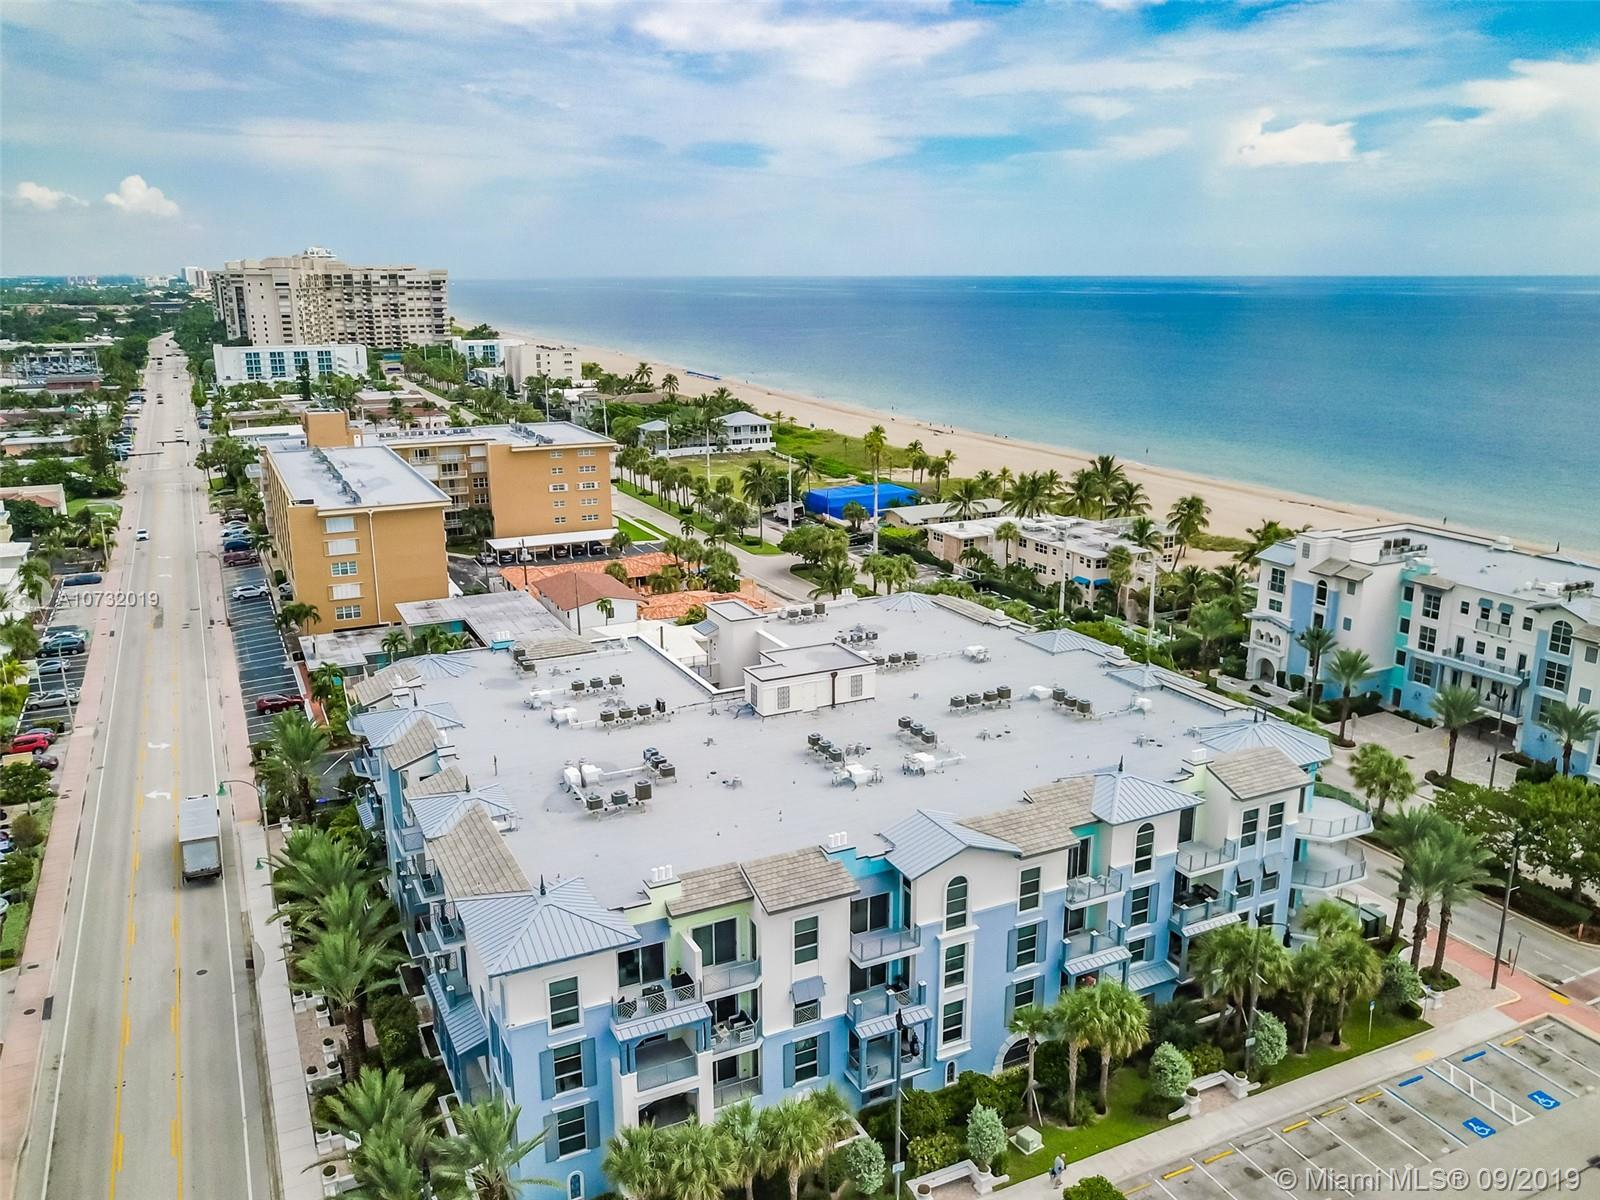 One of Lauderdale by the Sea 2 Bedroom Homes for Sale at 4511 El Mar Drive